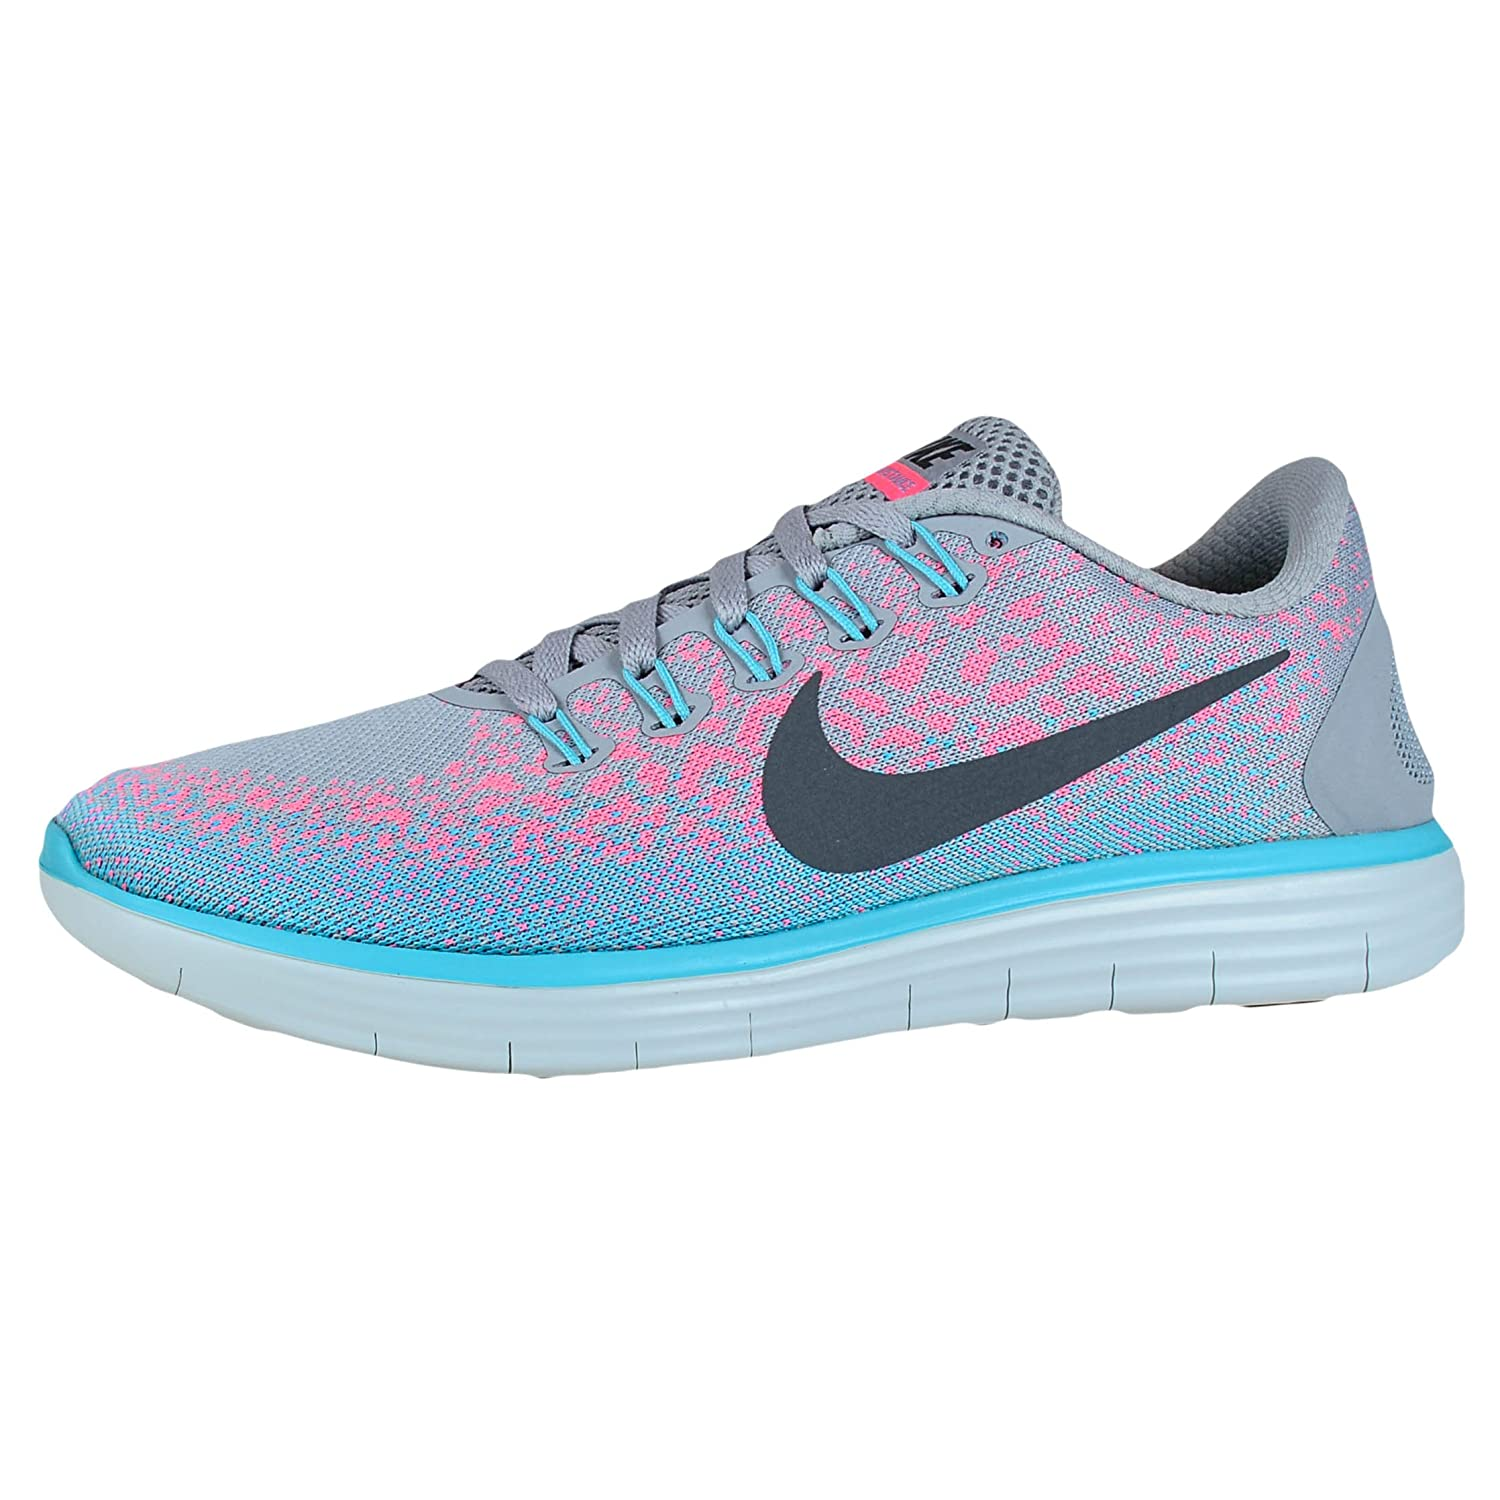 newest e73e3 305bd Amazon.com   Nike Womens Free Rn Distance Wolf Grey Dark Grey Pink Blast  Running Shoe 5 US   Road Running